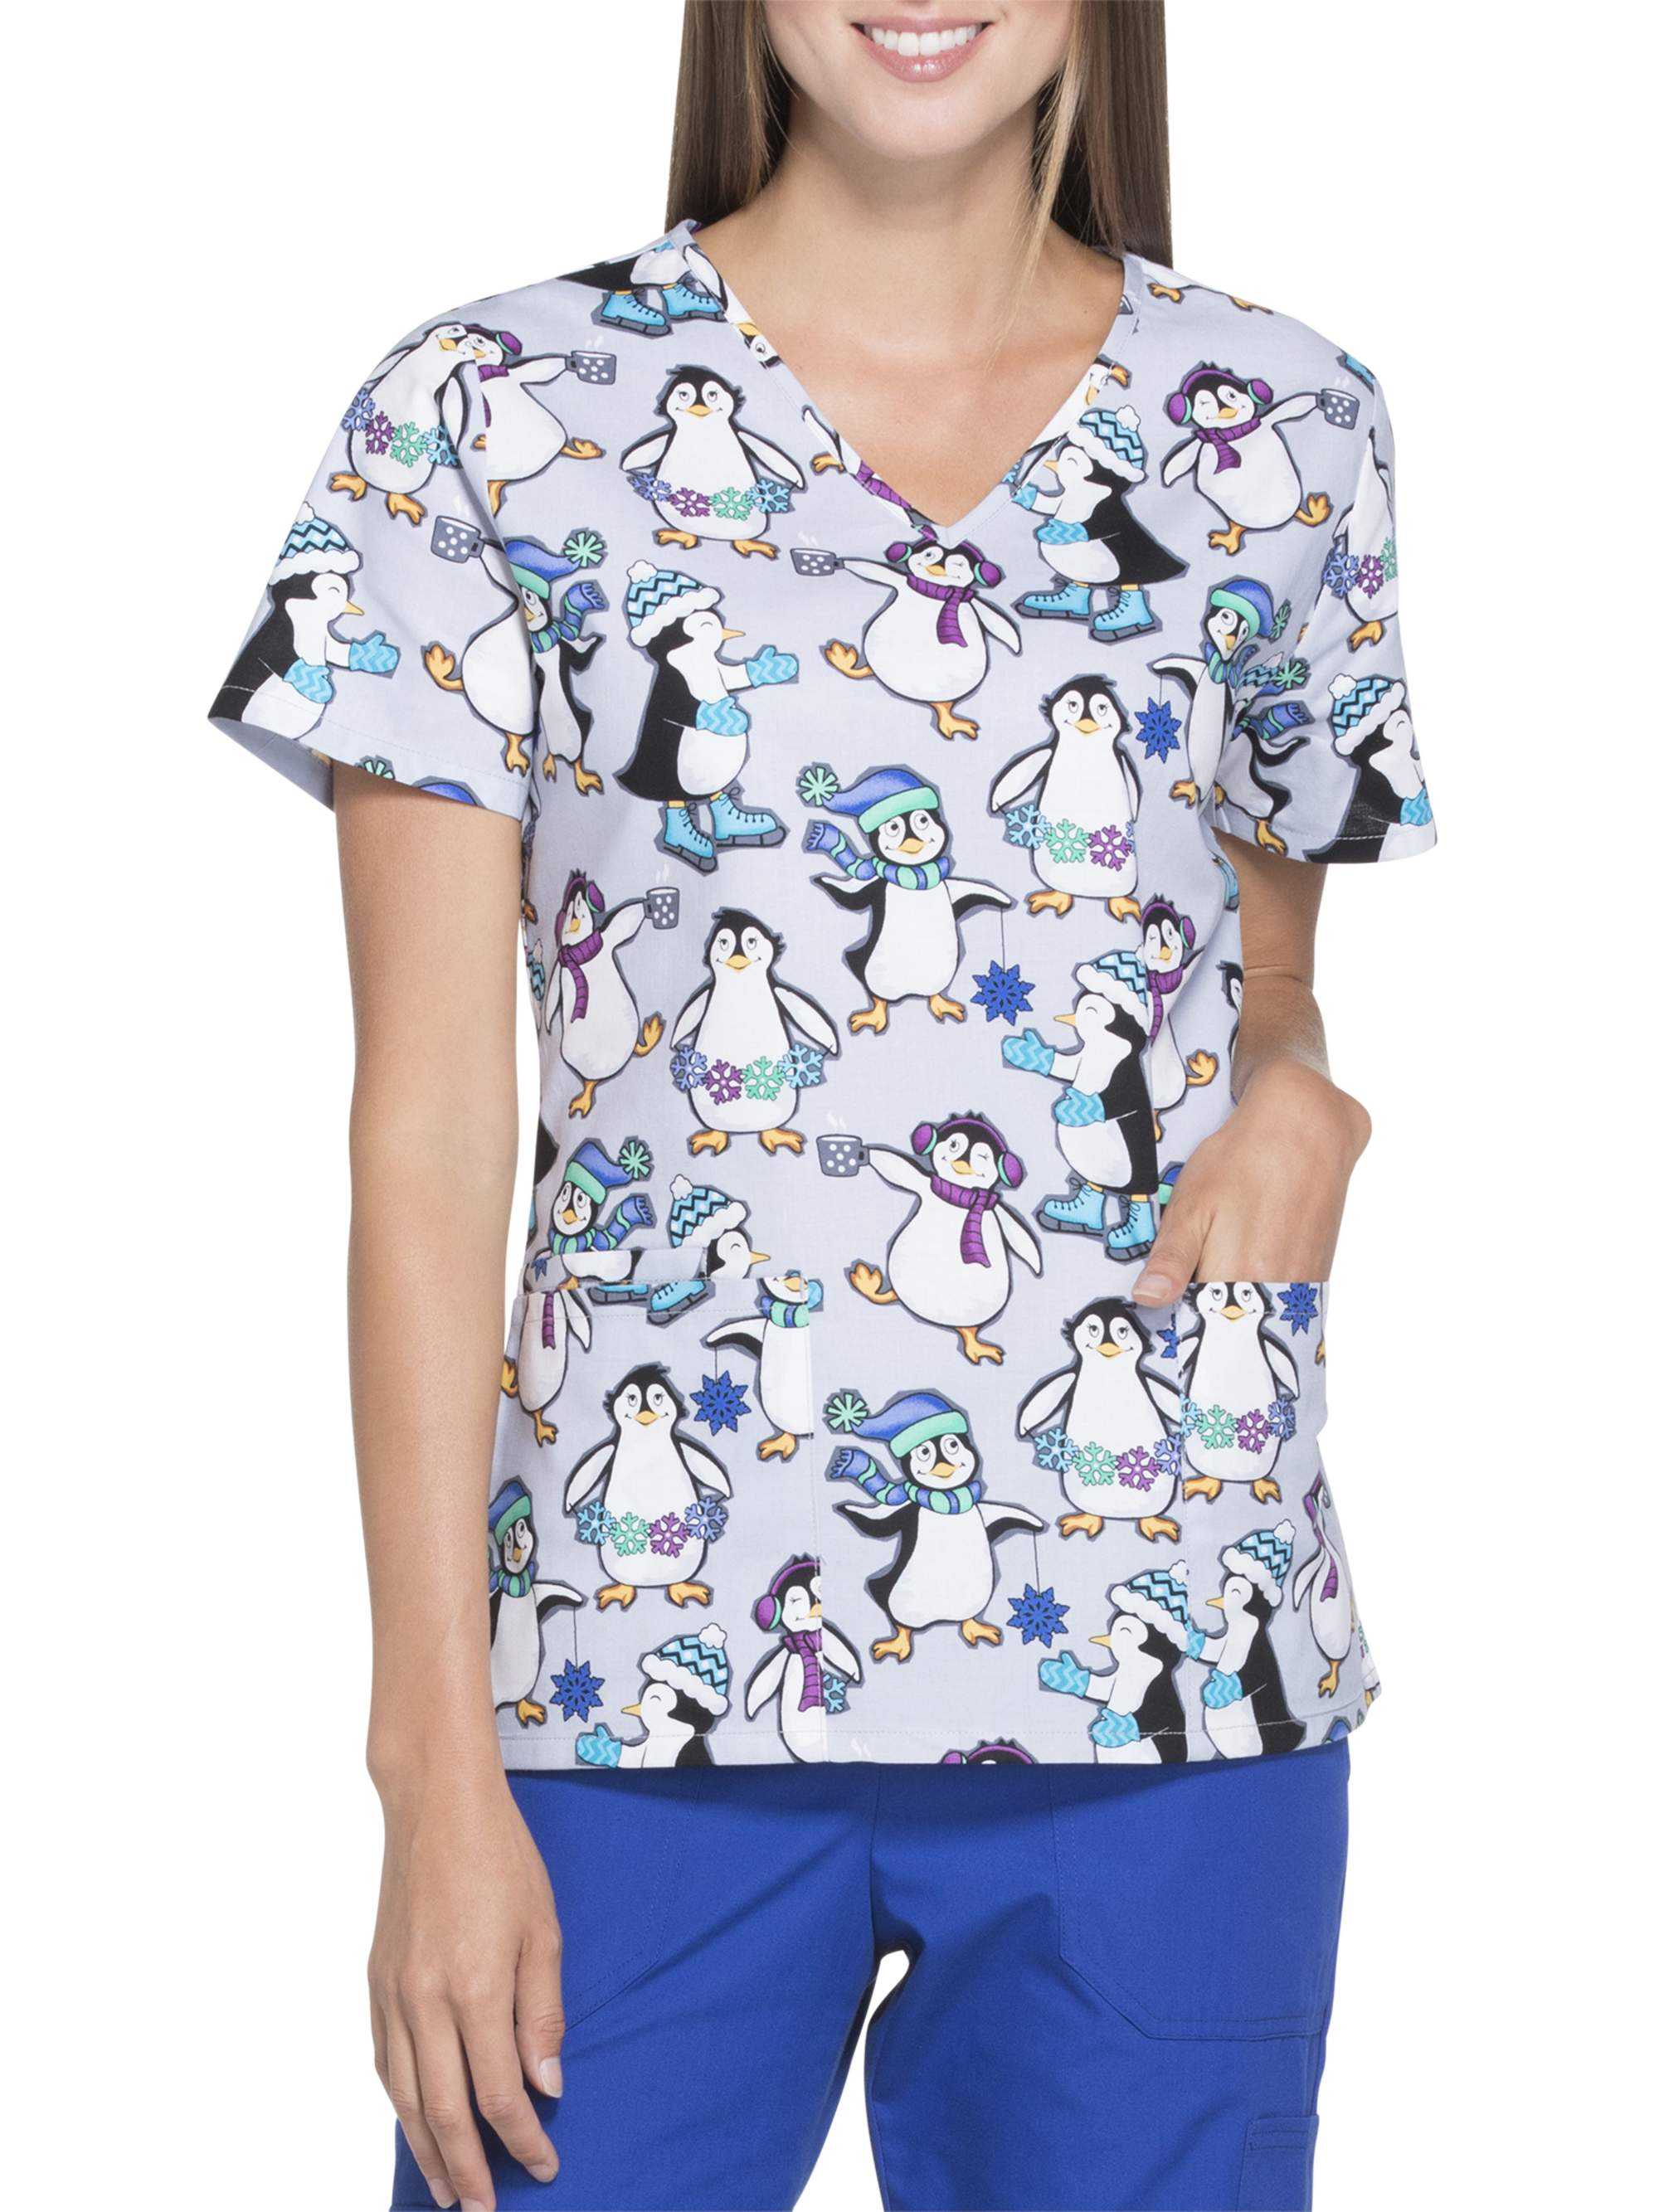 "Scrubstar Women's Fashion Collection ""Polar Penguins"" Printed Scrub Top"